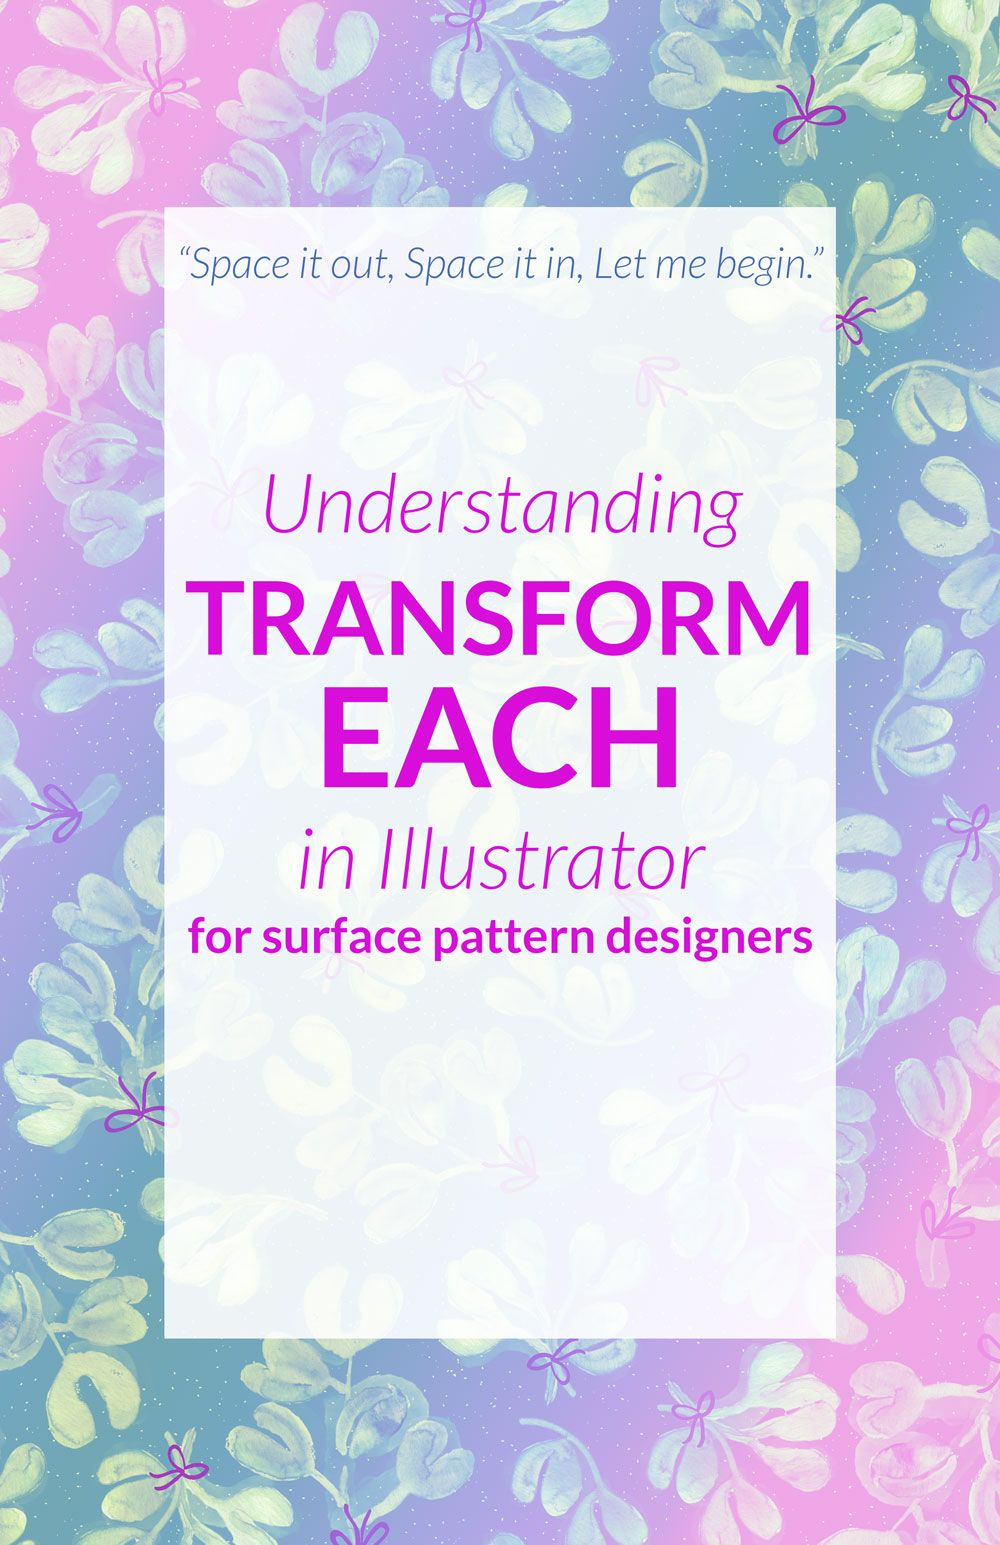 Photoshop Classes Using The Transform Each Tool In Illustrator Tutorials Classes